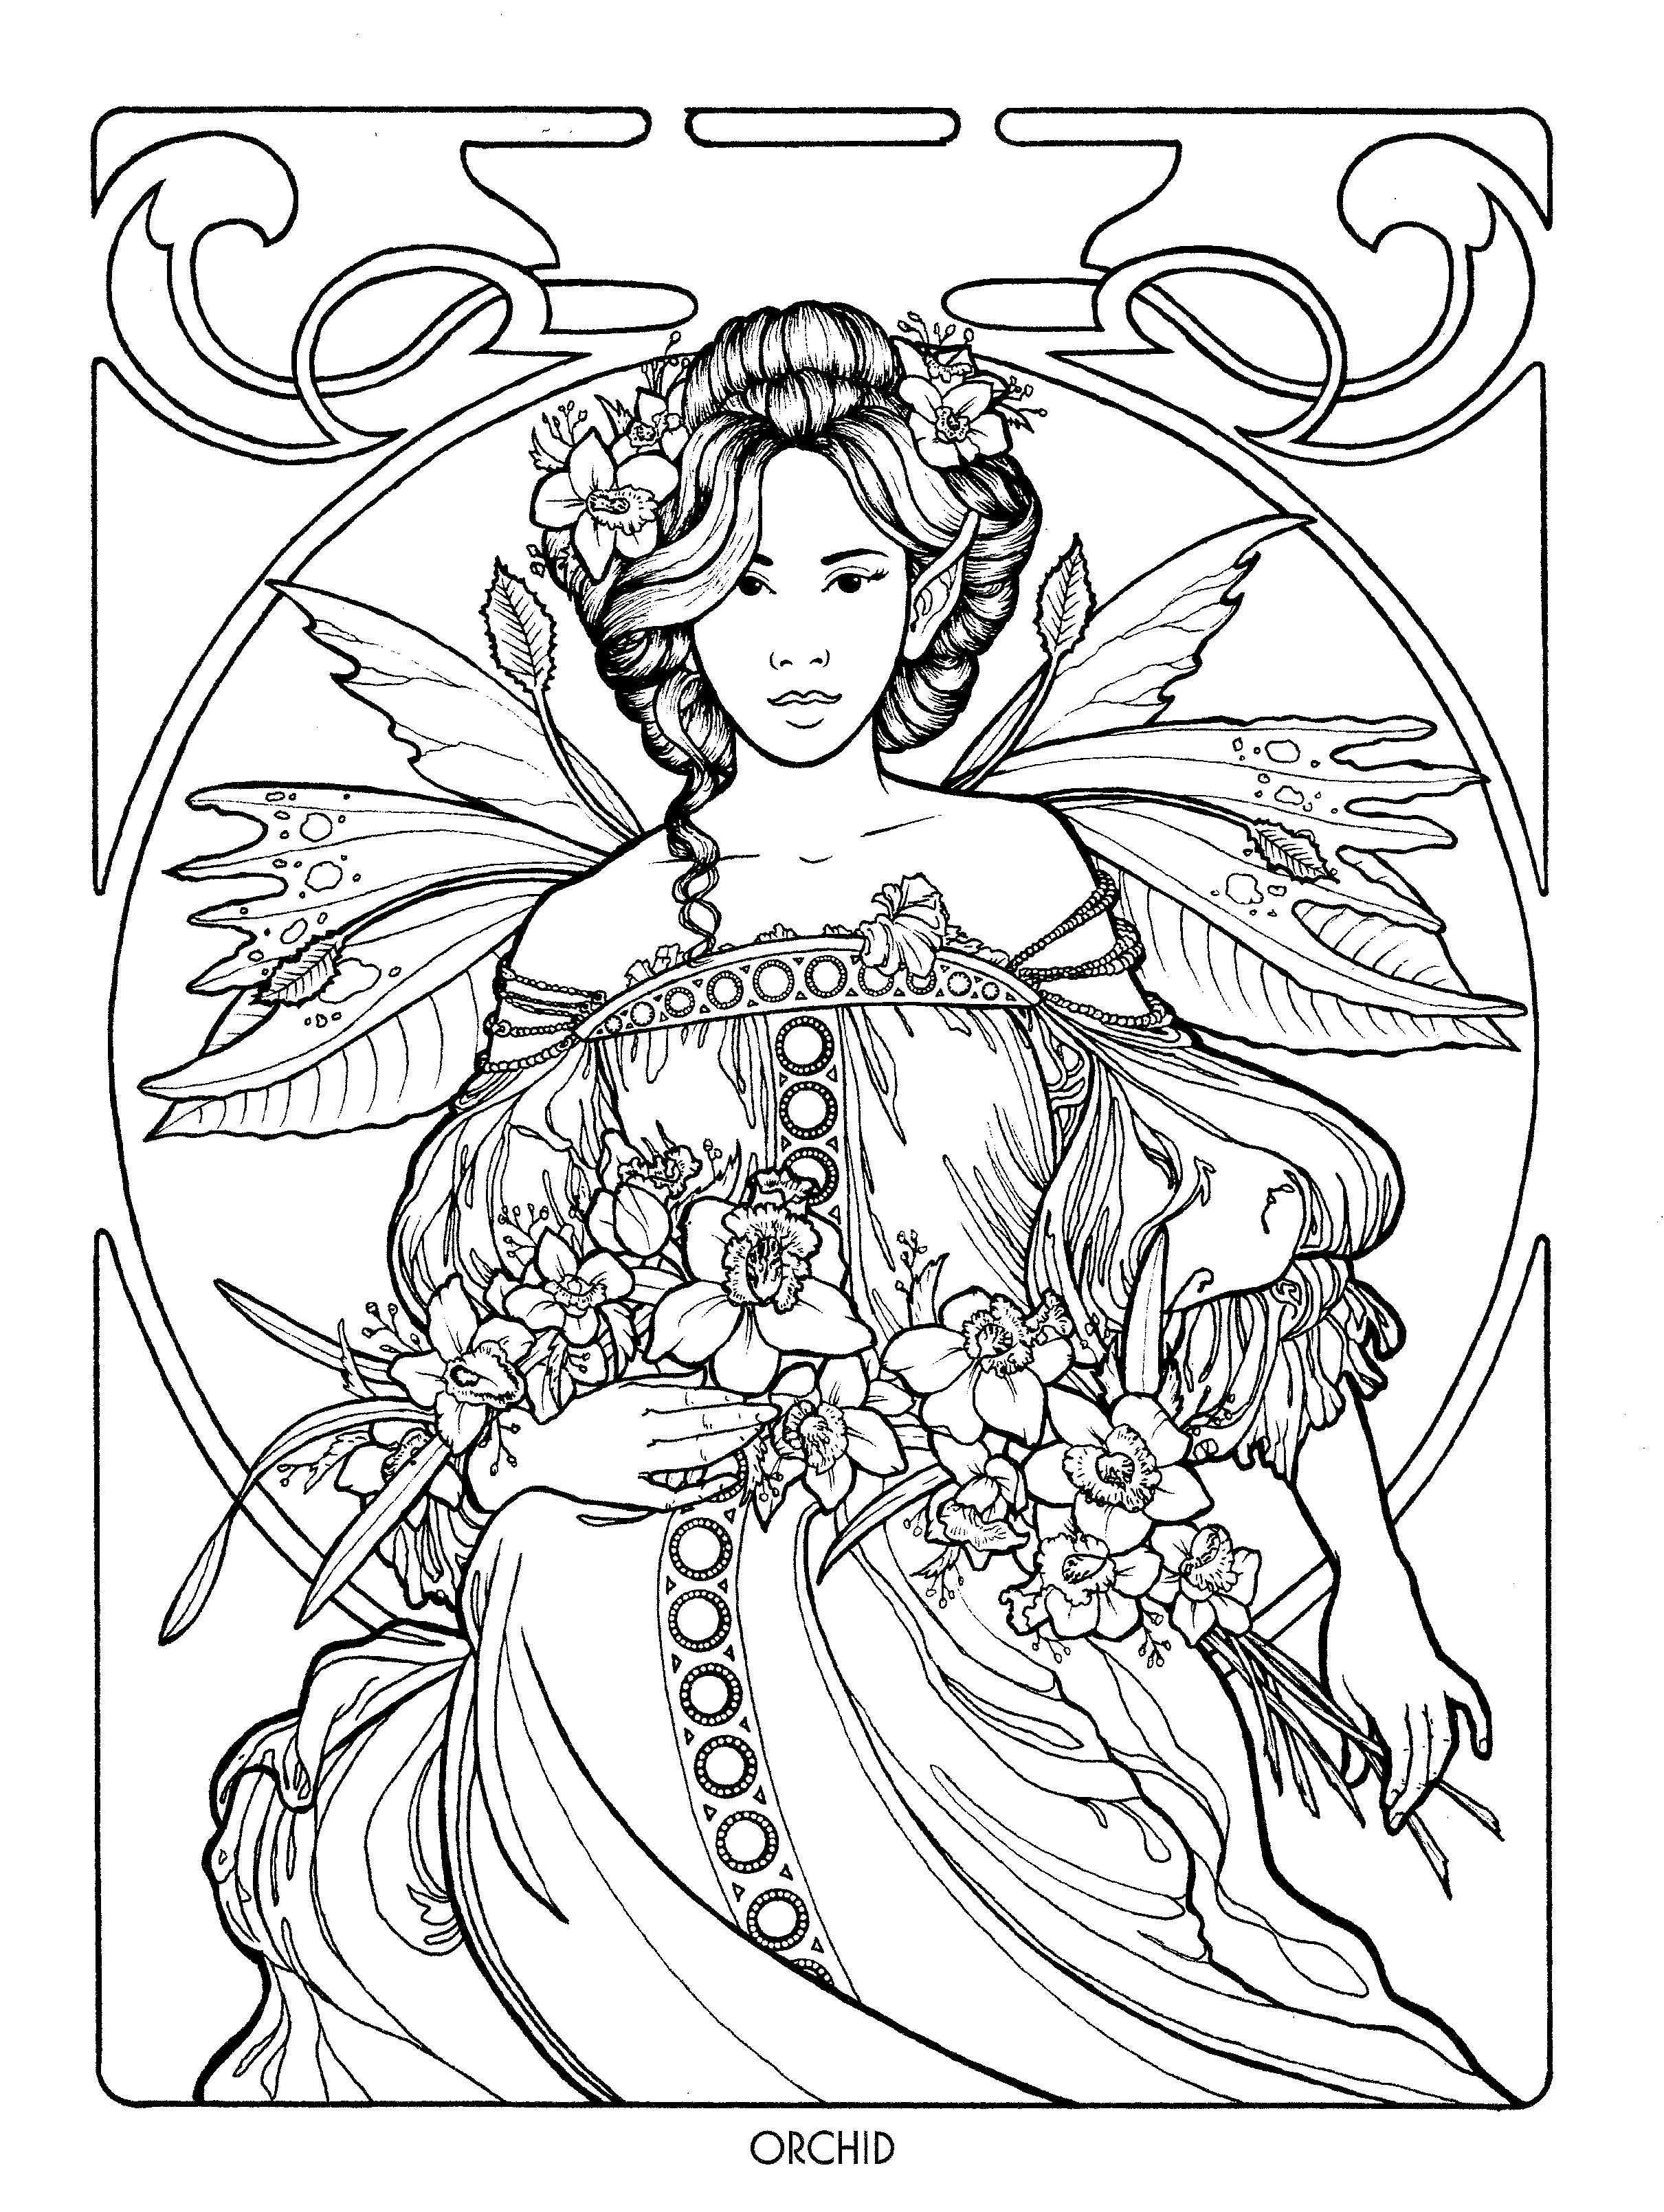 Fairy 25 (With images) | Mermaid coloring pages, Fairy ...